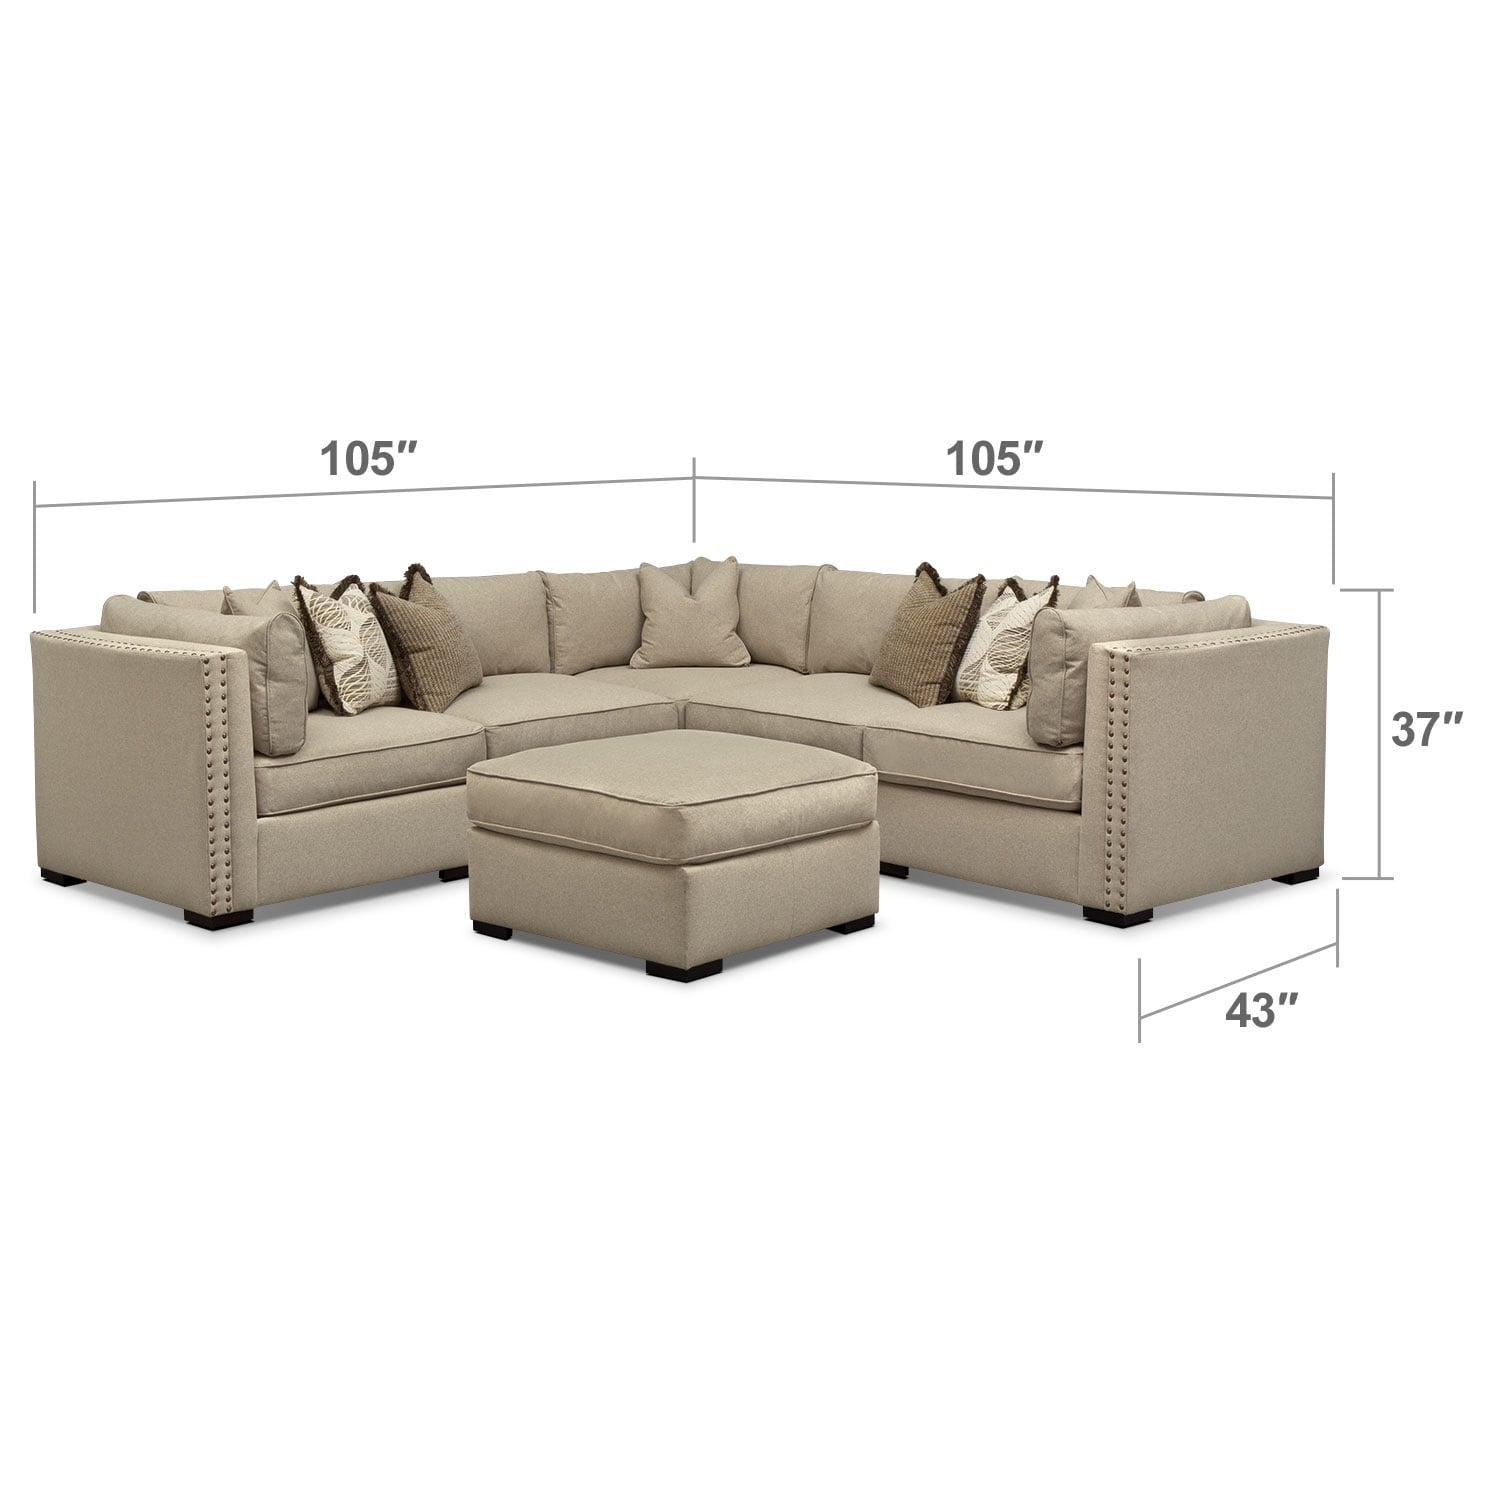 Living Room Furniture - Athens 6 Pc. Sectional